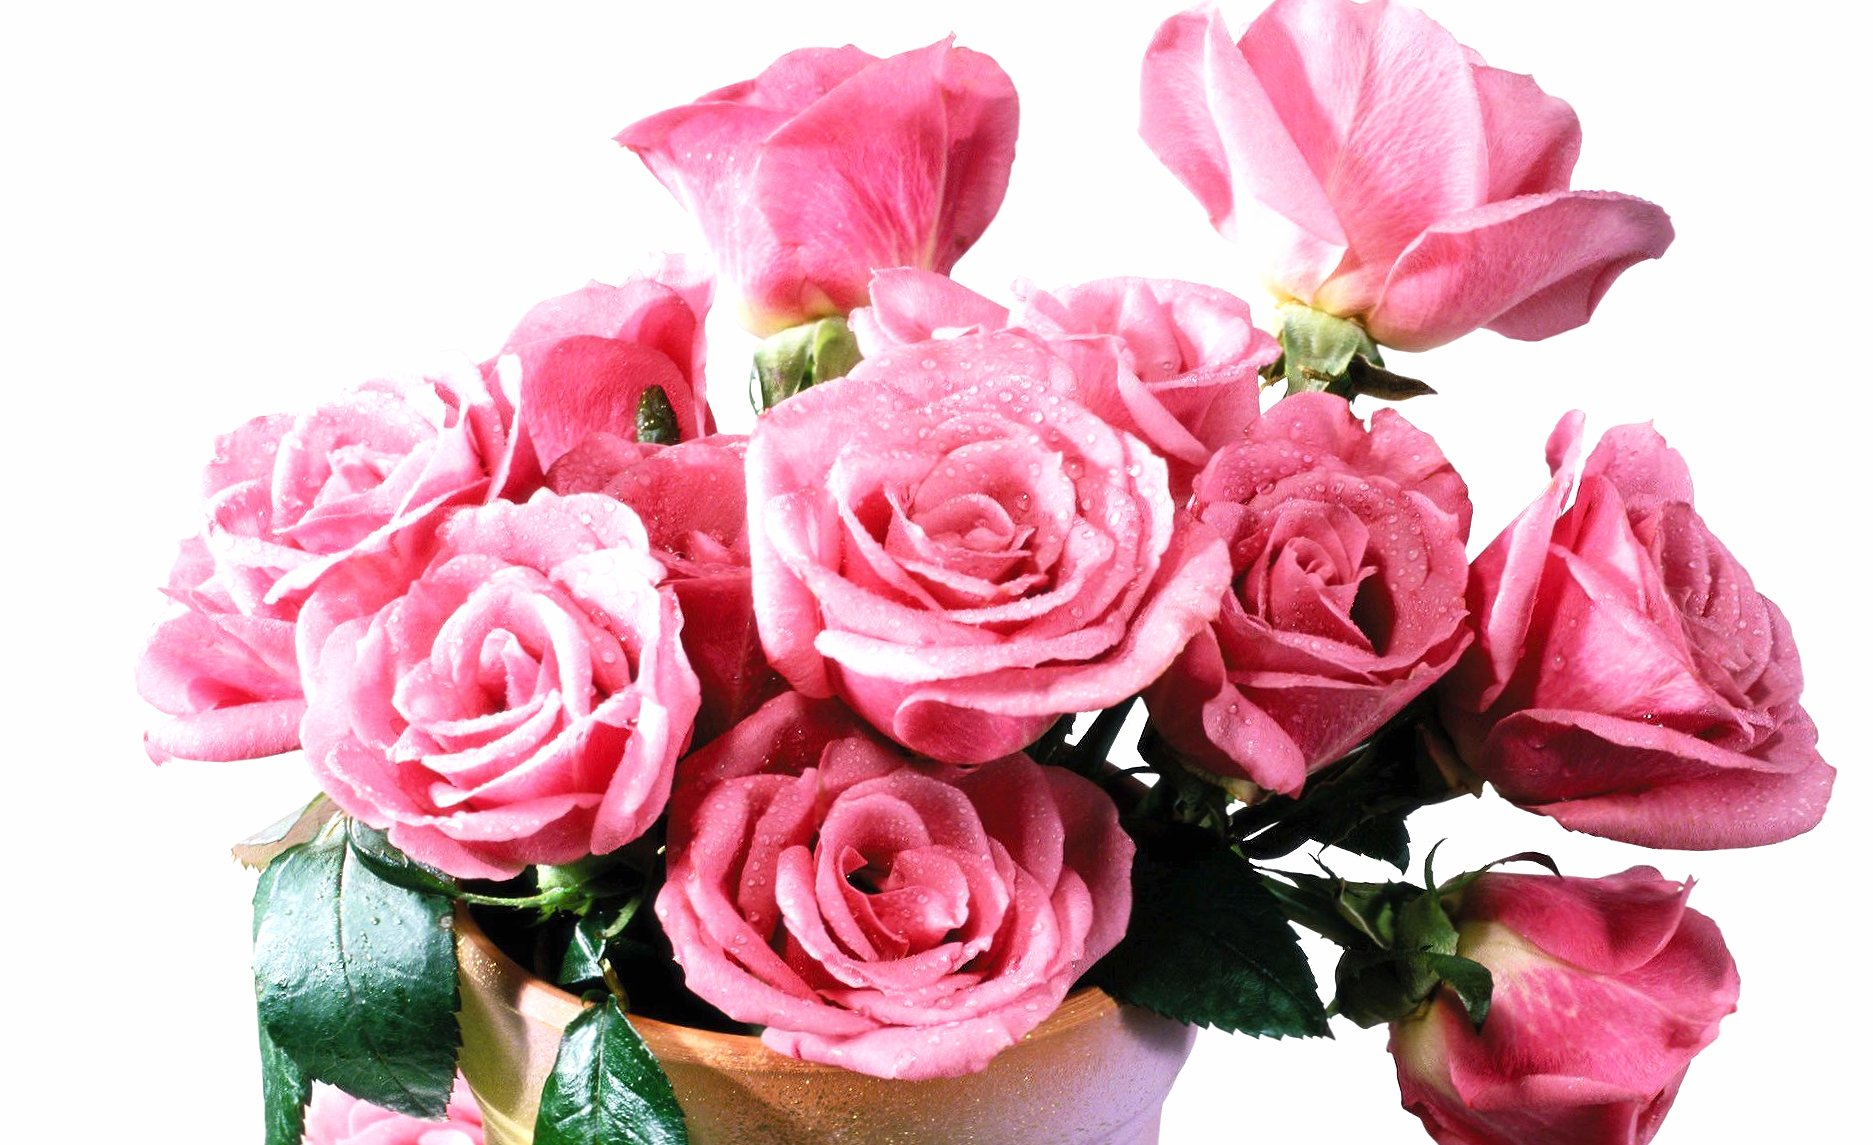 Wet pink roses in the vase wallpapers HD quality